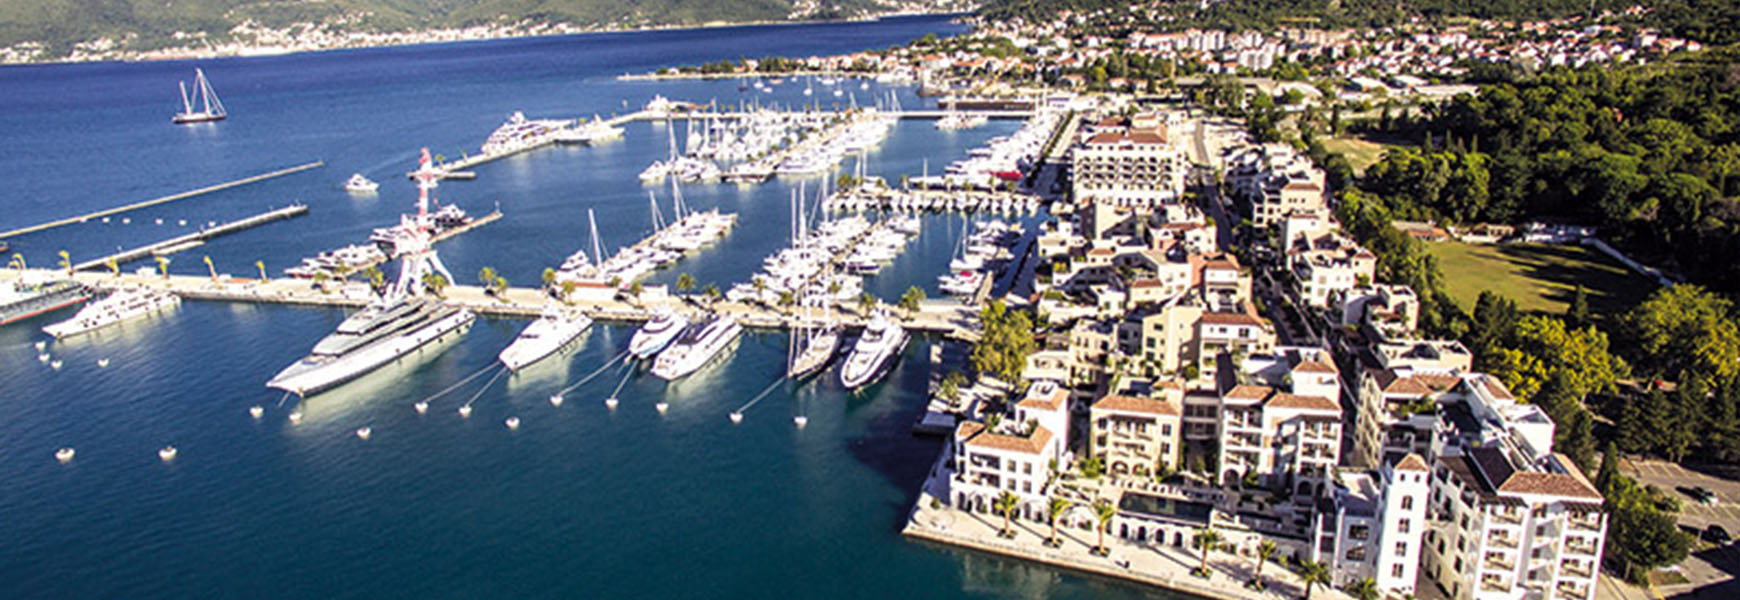 7 Reasons Why You Should Visit Porto Montenegro This Summer